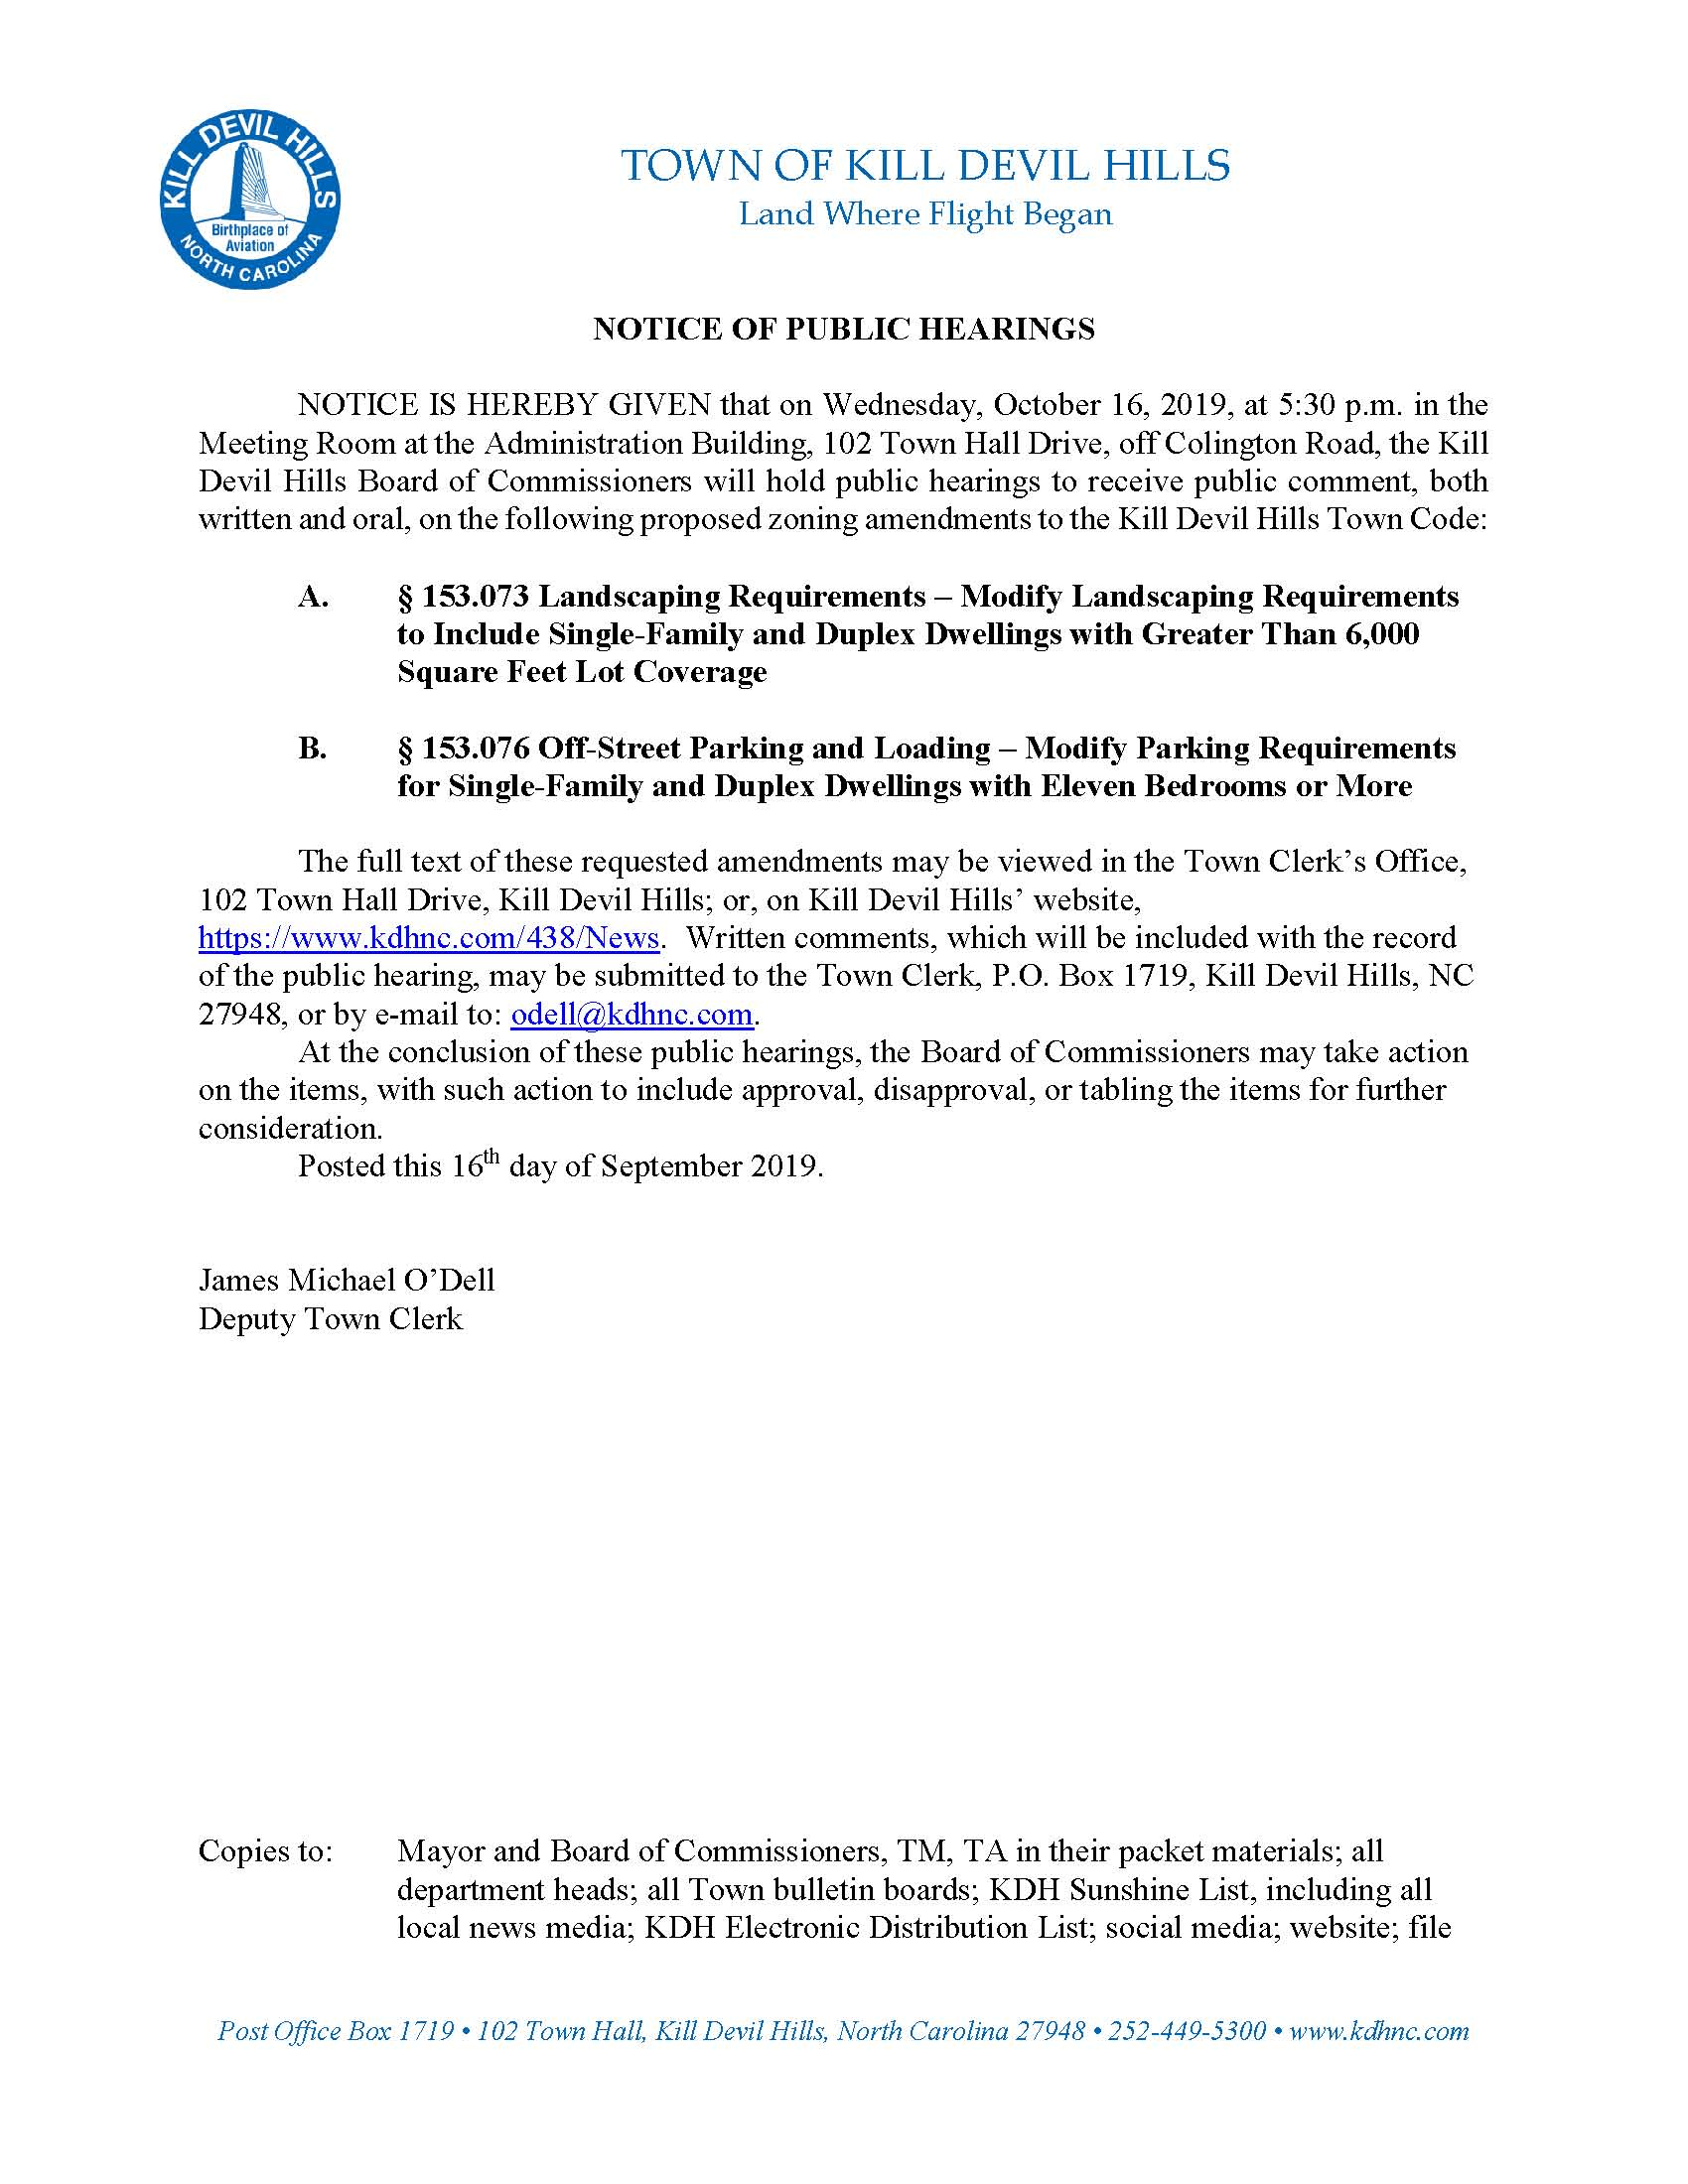 10.16.2019 Kill Devil Hills Board of Commissioners Public Hearings Notice